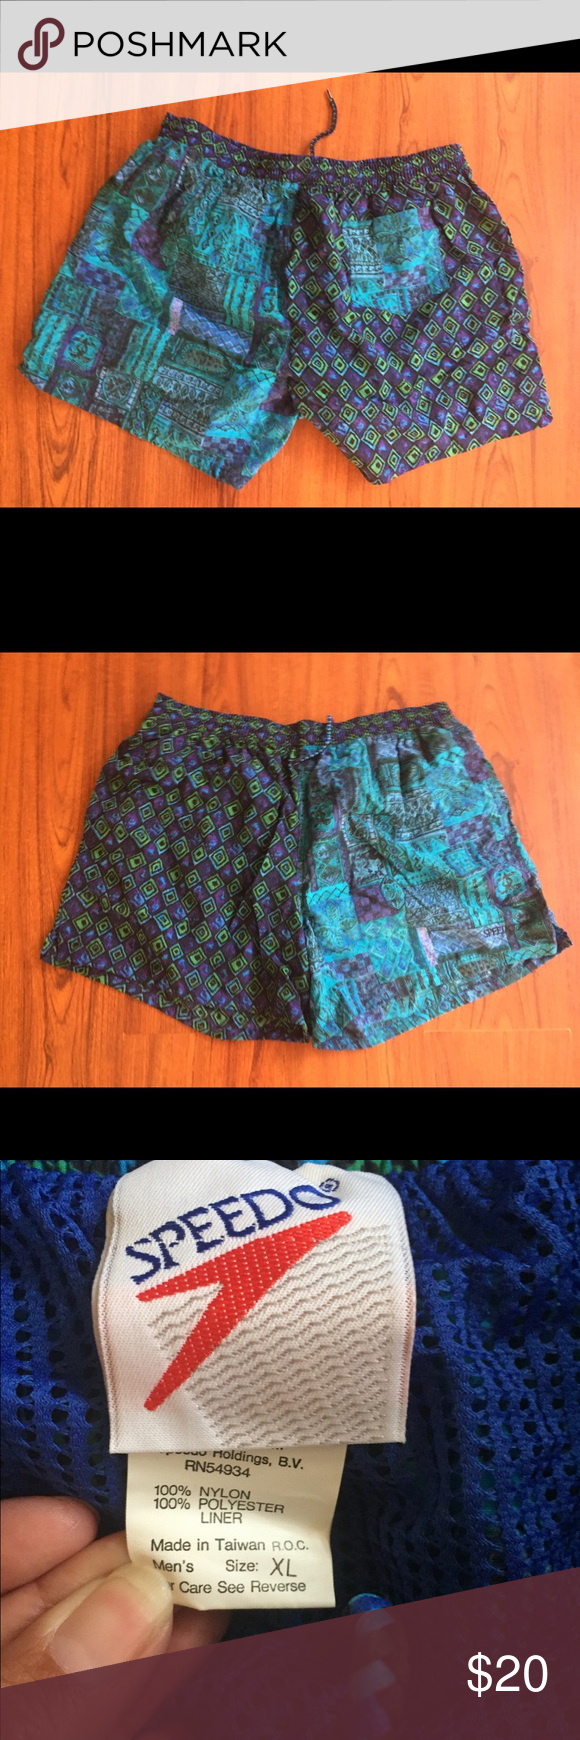 681b7acc49 90s Vintage Speedo Blue Green Swim Trunks Shorts 90s Vintage Black, Blue,  Green and